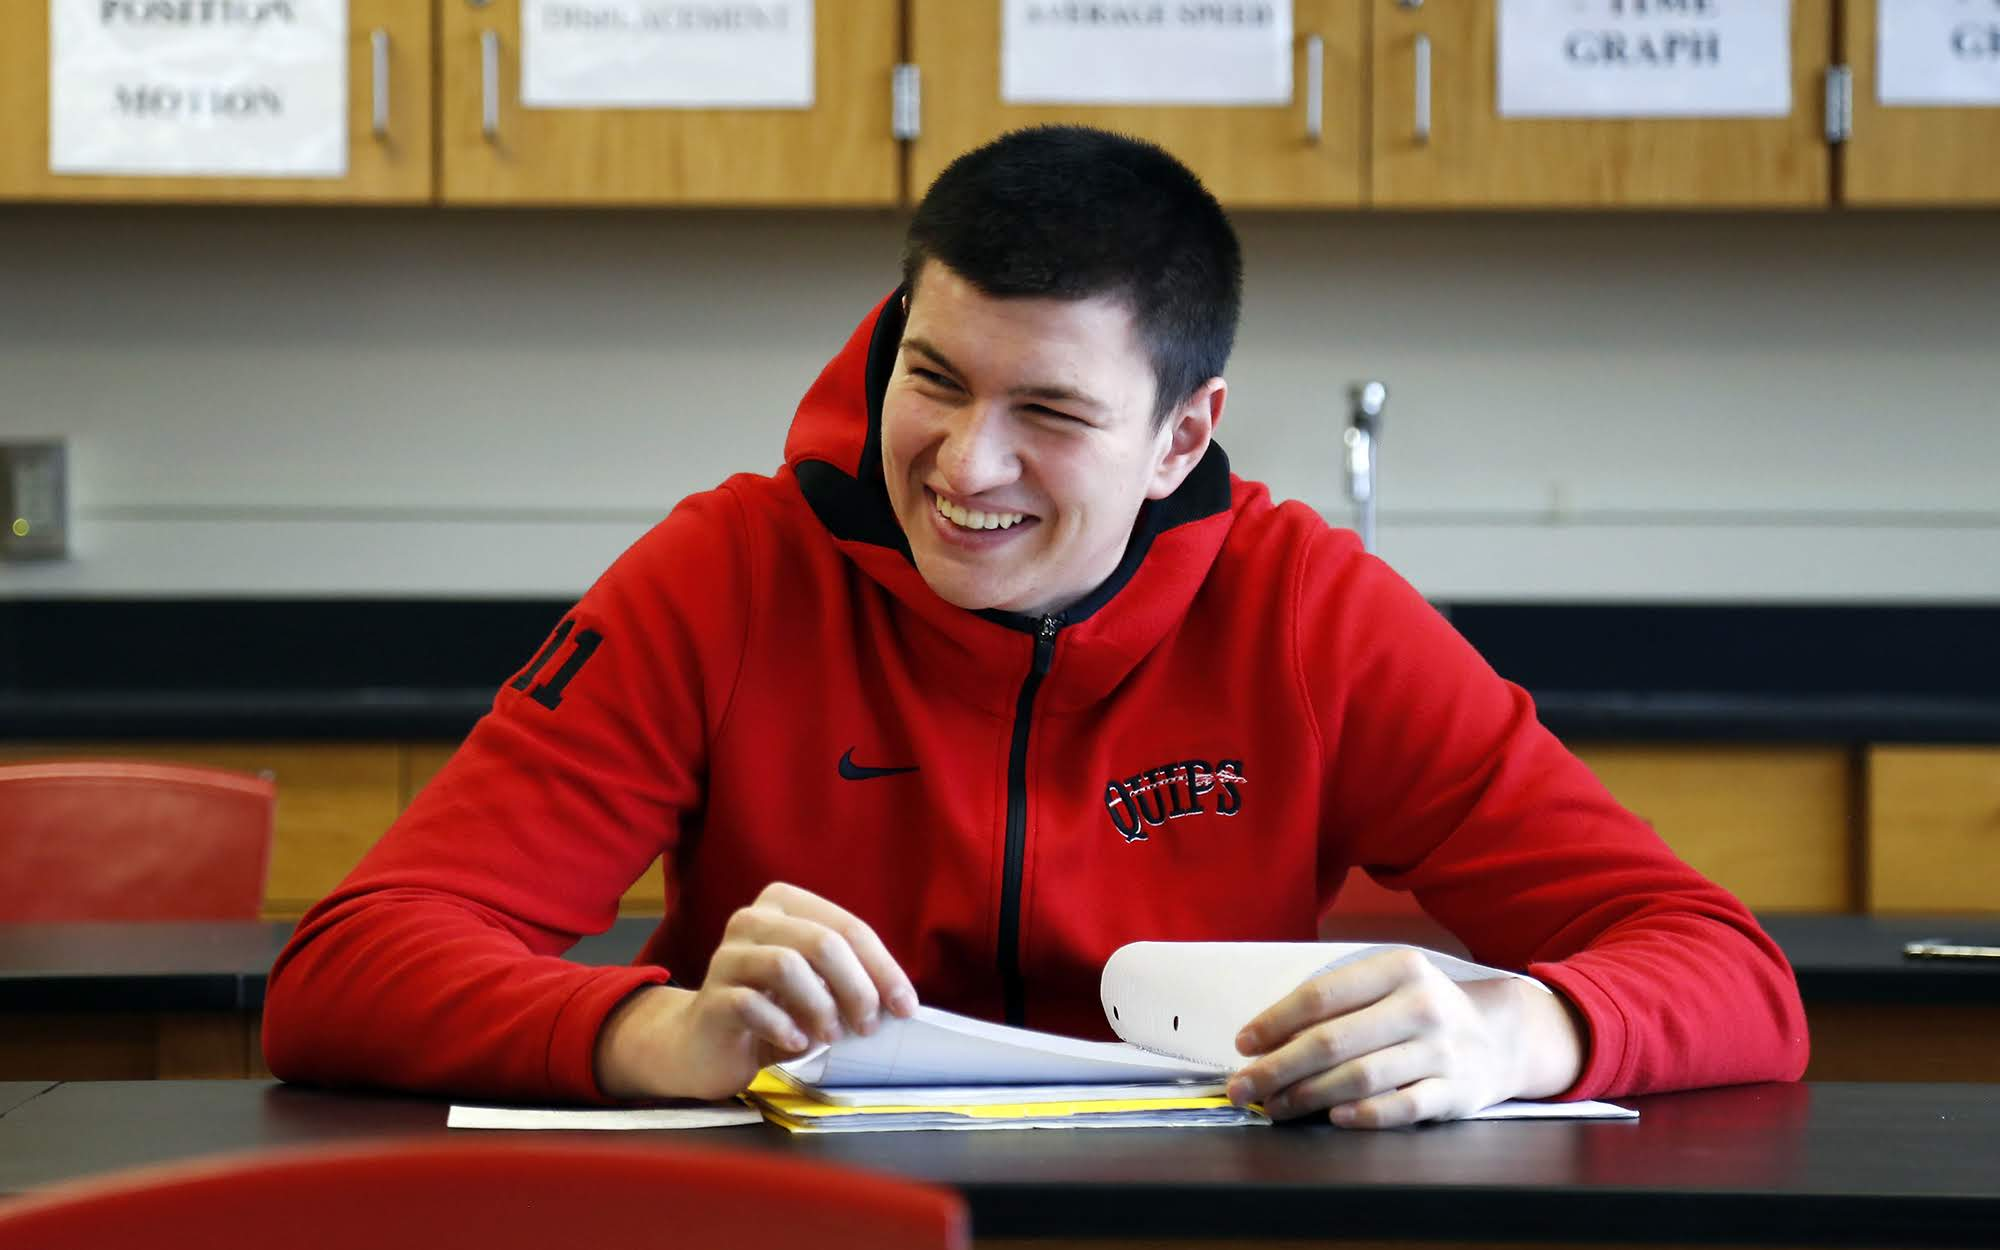 Eli Kosanovich, a senior at Aliquippa Junior/Senior High School laughs and chats with other students before the start of a physics class on Dec. 5, 2018. (Photo by Ryan Loew/PublicSource)